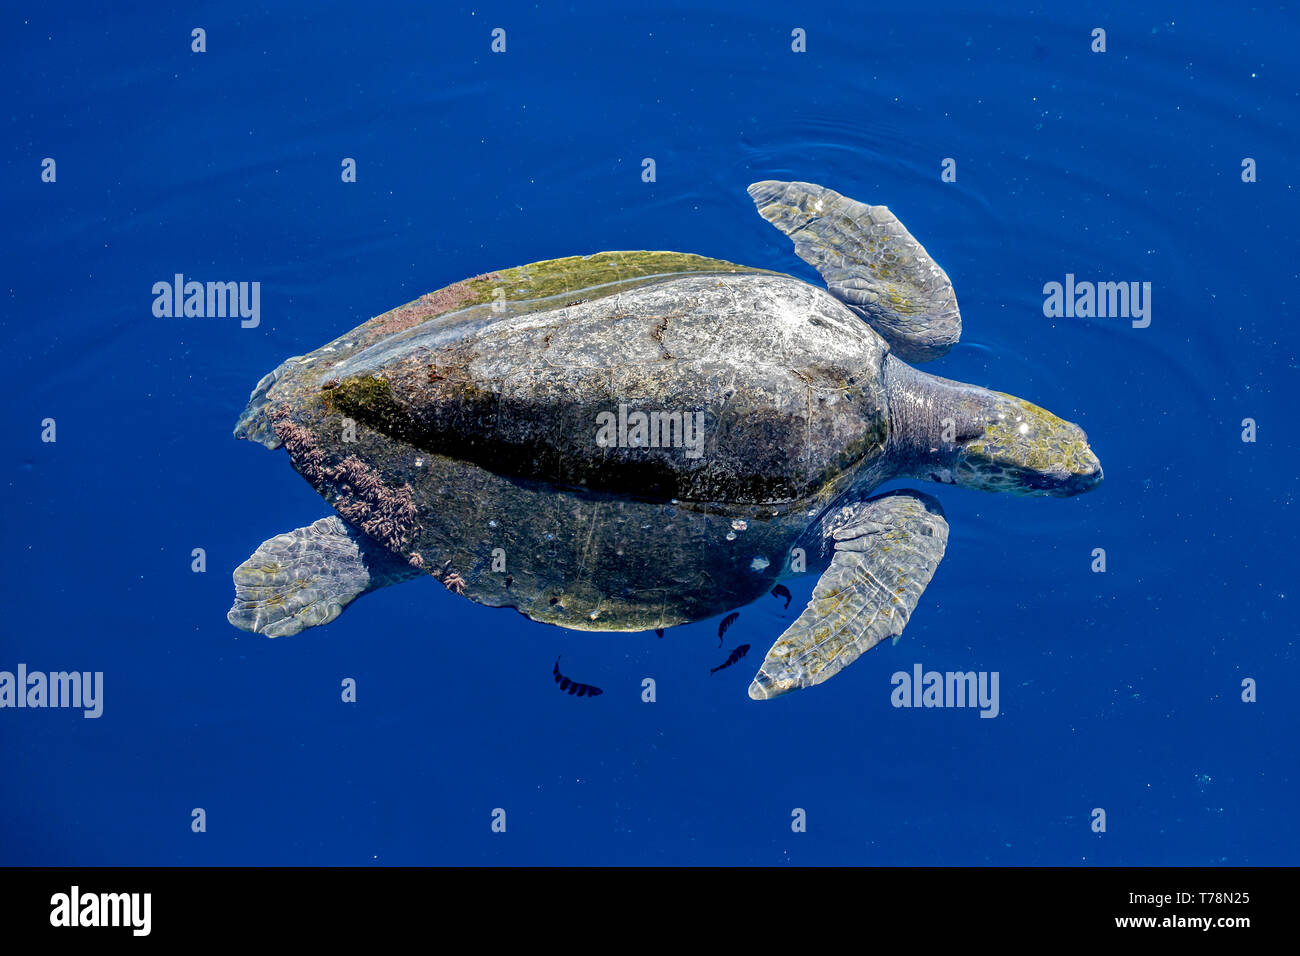 Olive Ridley Sea Turtle (Lepidochelys olivacea), also known as the Pacific Ridley Sea Turtle, resting on the surface in the Sea of Cortex - Stock Image